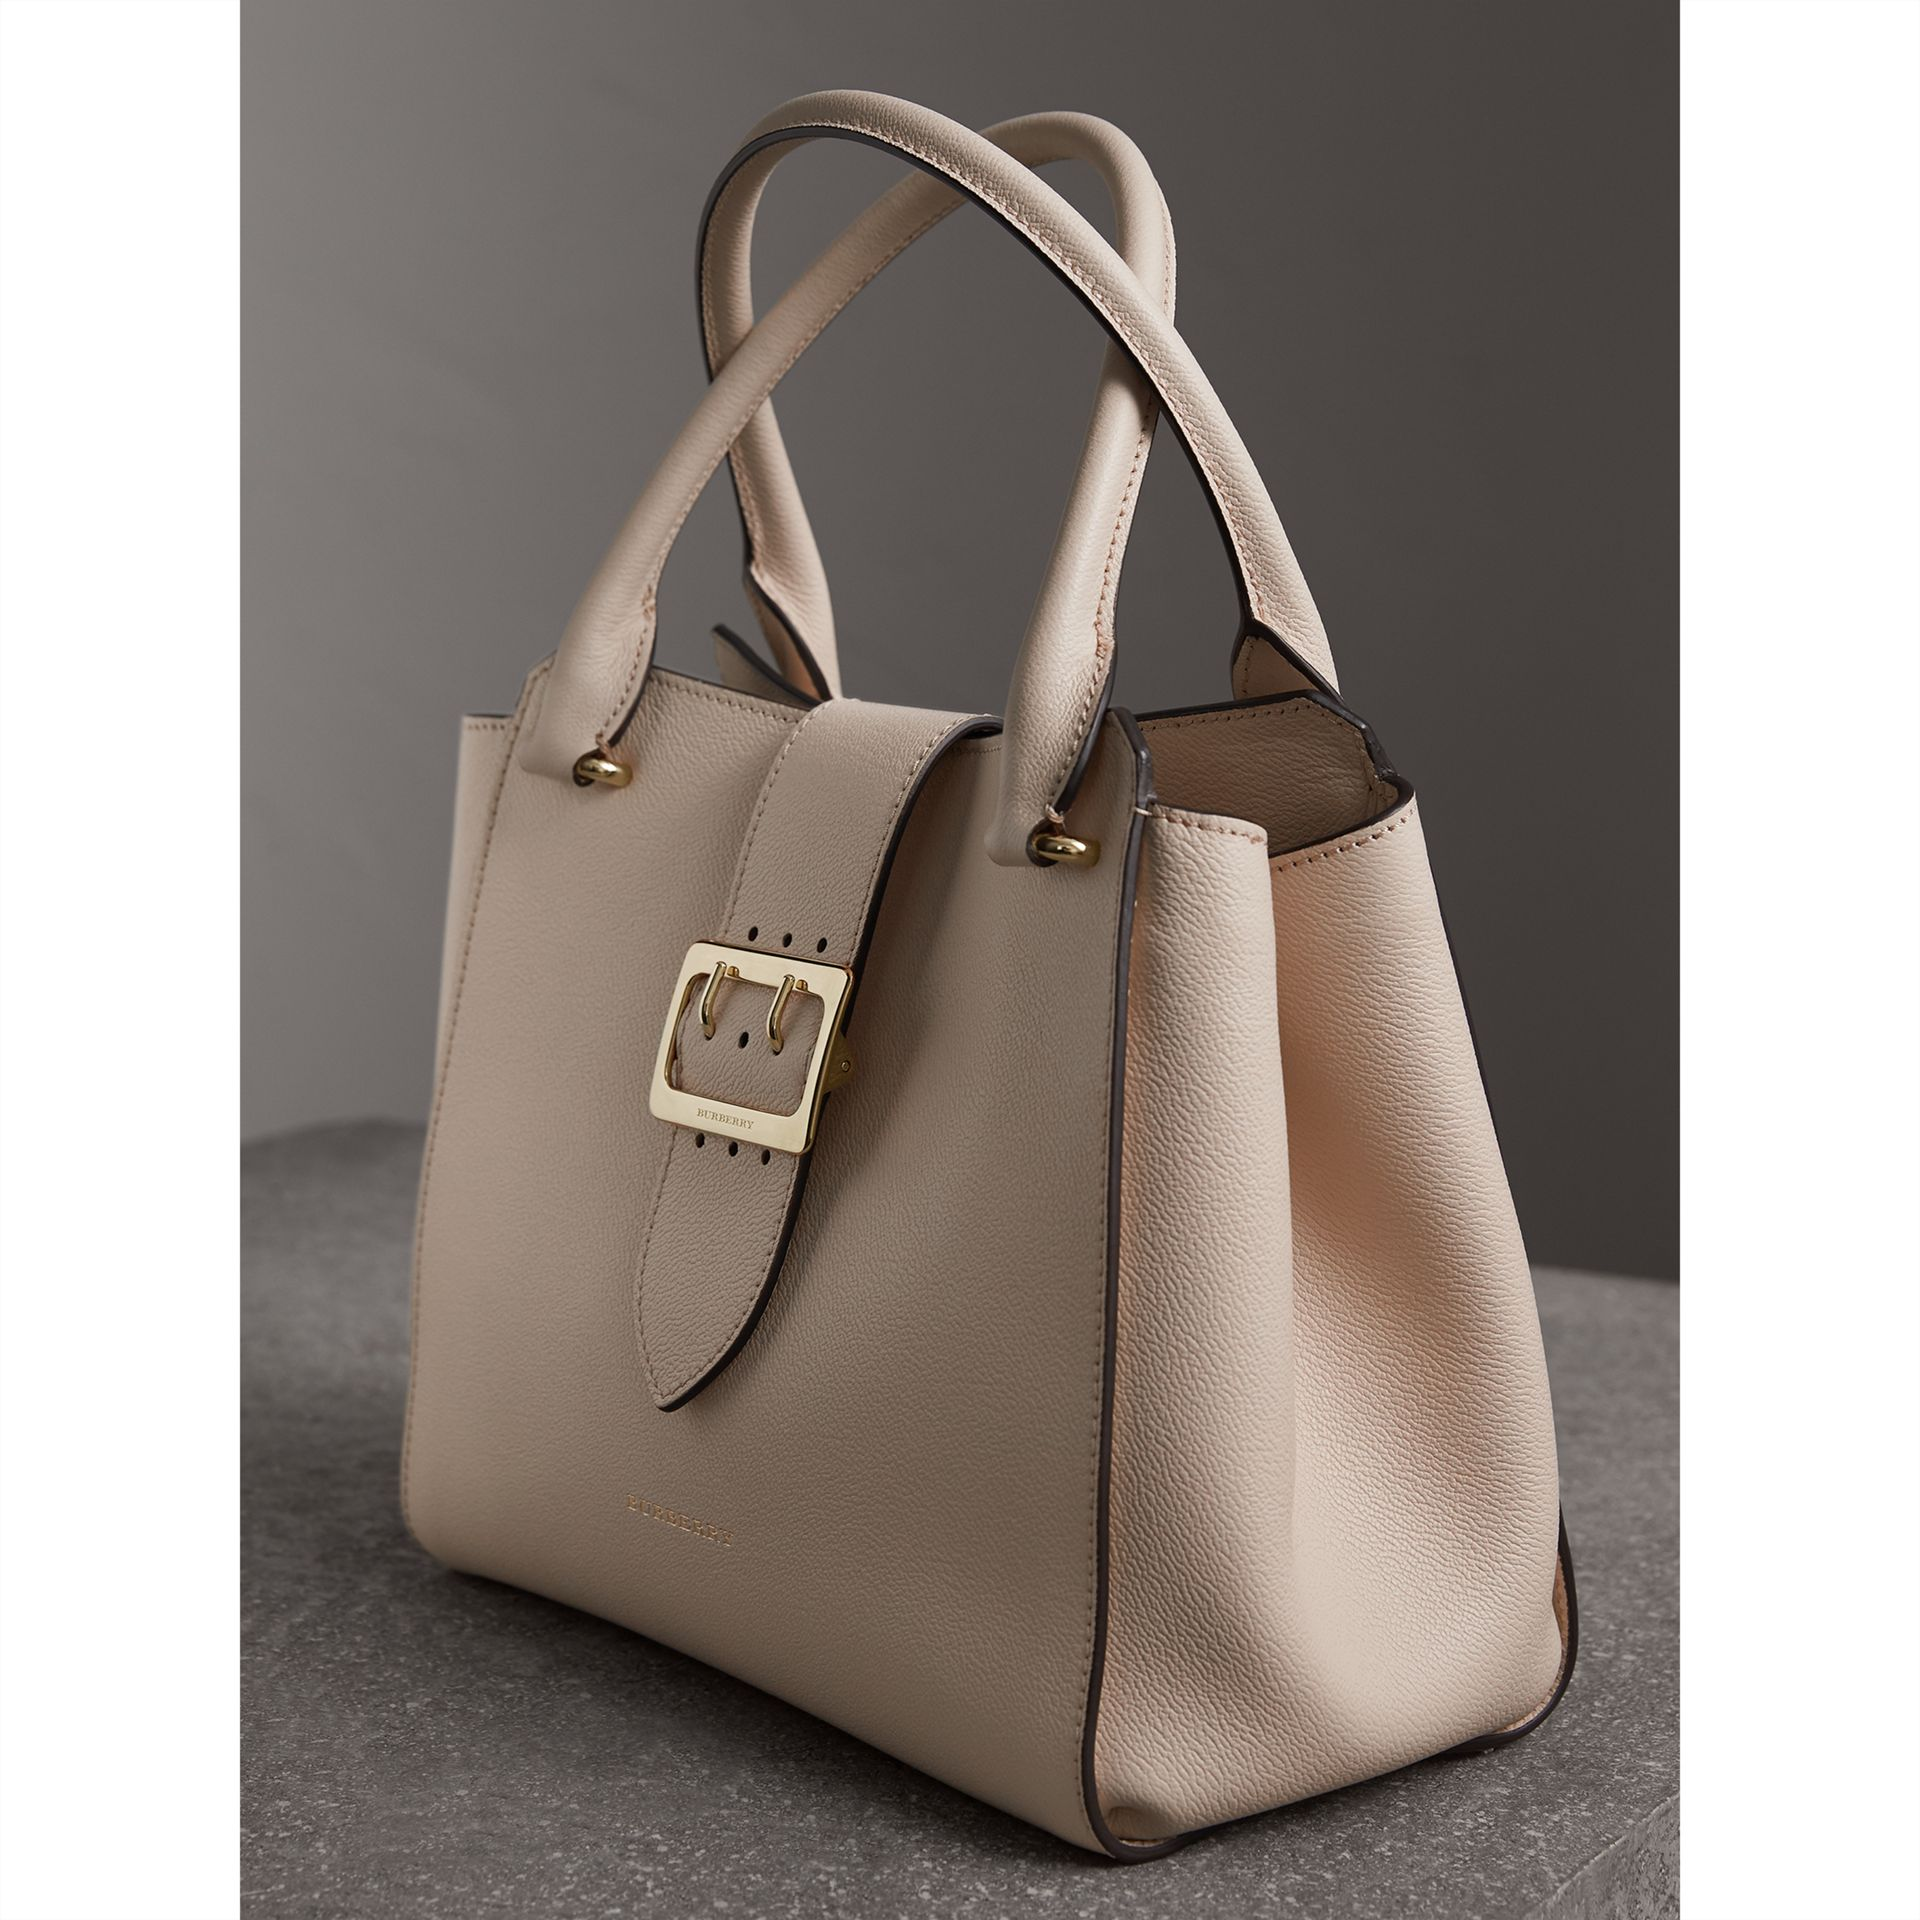 de4250d7b6da Burberry The Medium Buckle Tote in Grainy Leather at £1190